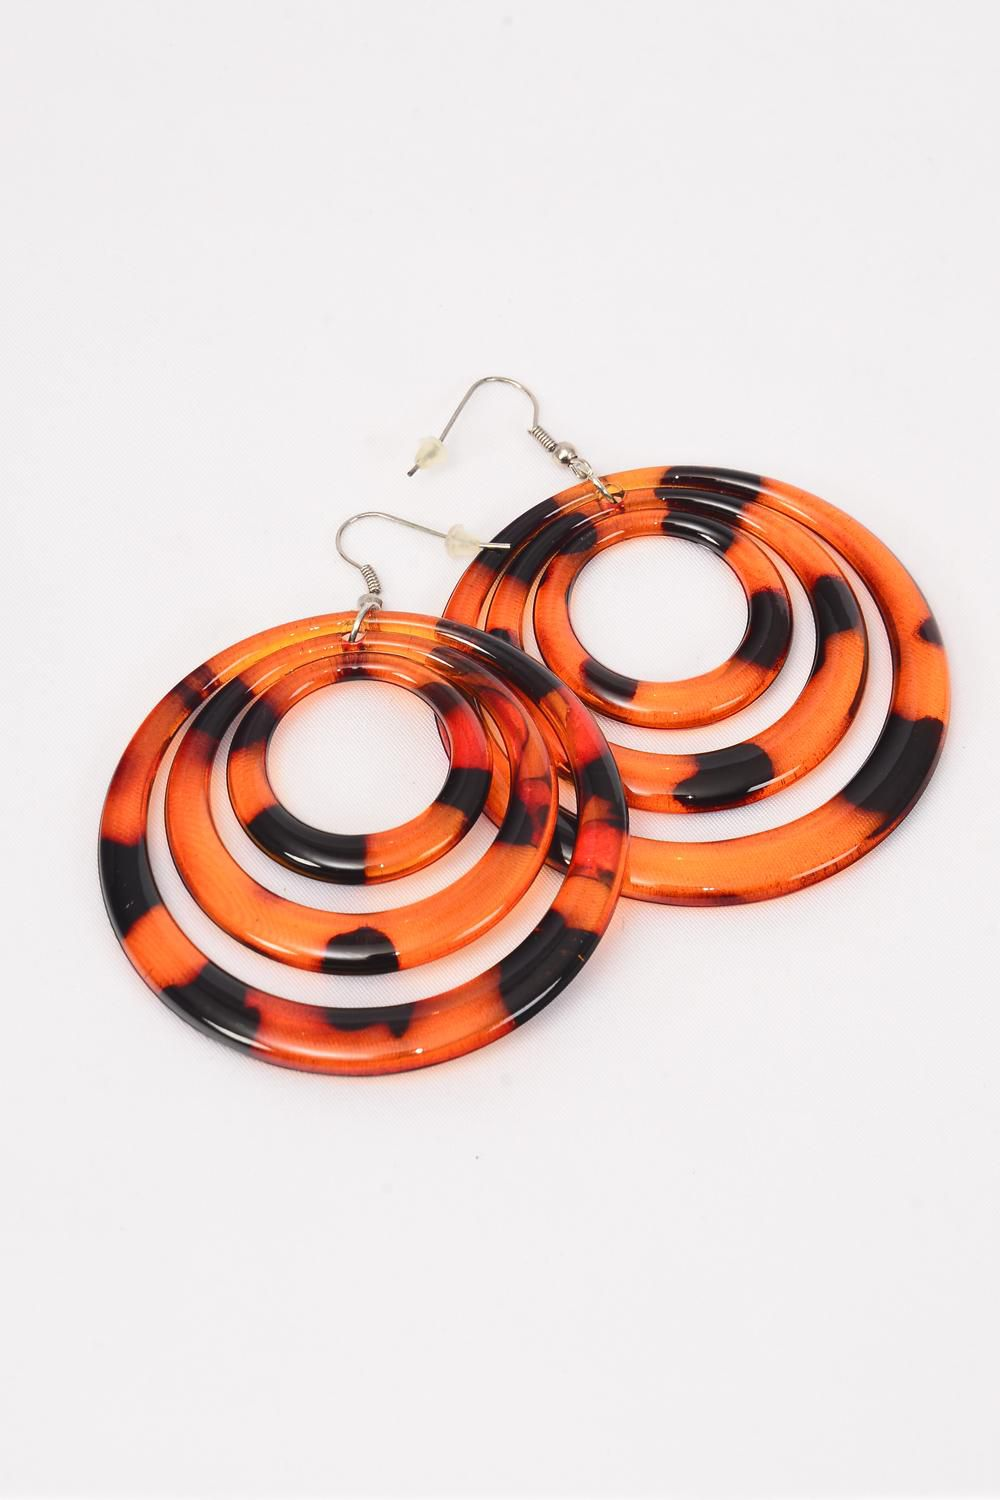 "Earrings Acrylic Tortoise Circle Dangle/DZ **Fish Hook** Size-2.5"" Wide,Earring Card & OPP Bag & UPC Code"